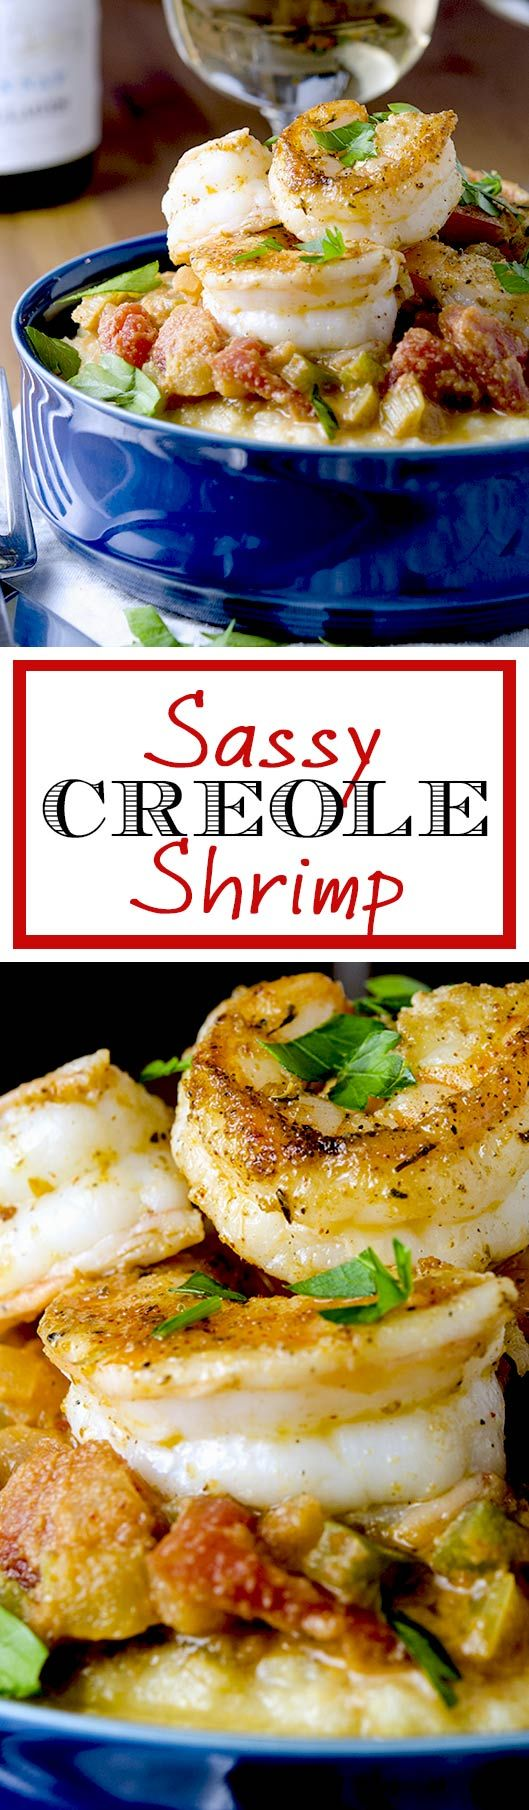 The perfect southern style shrimp creole recipe. So yummy with a touch of spice that makes this whole dish so nice.